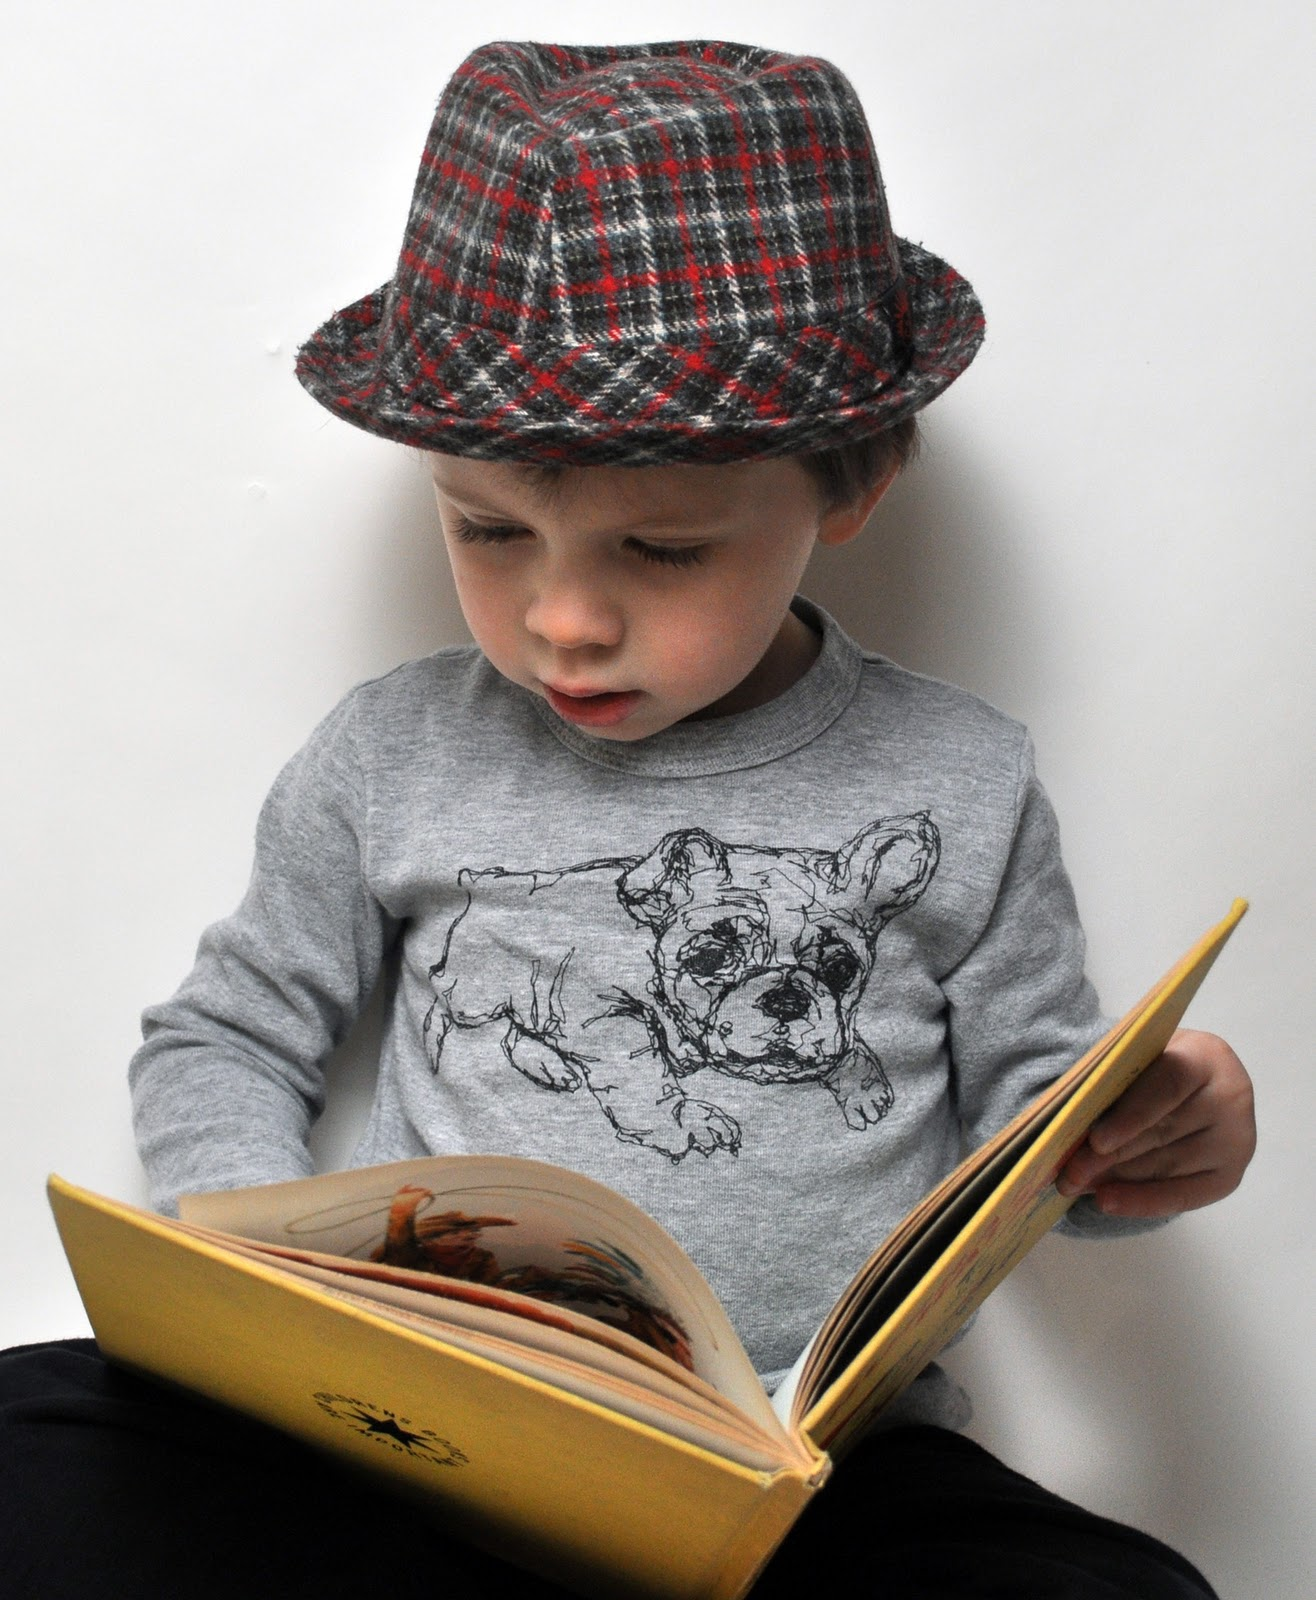 boy with bulldog shirt